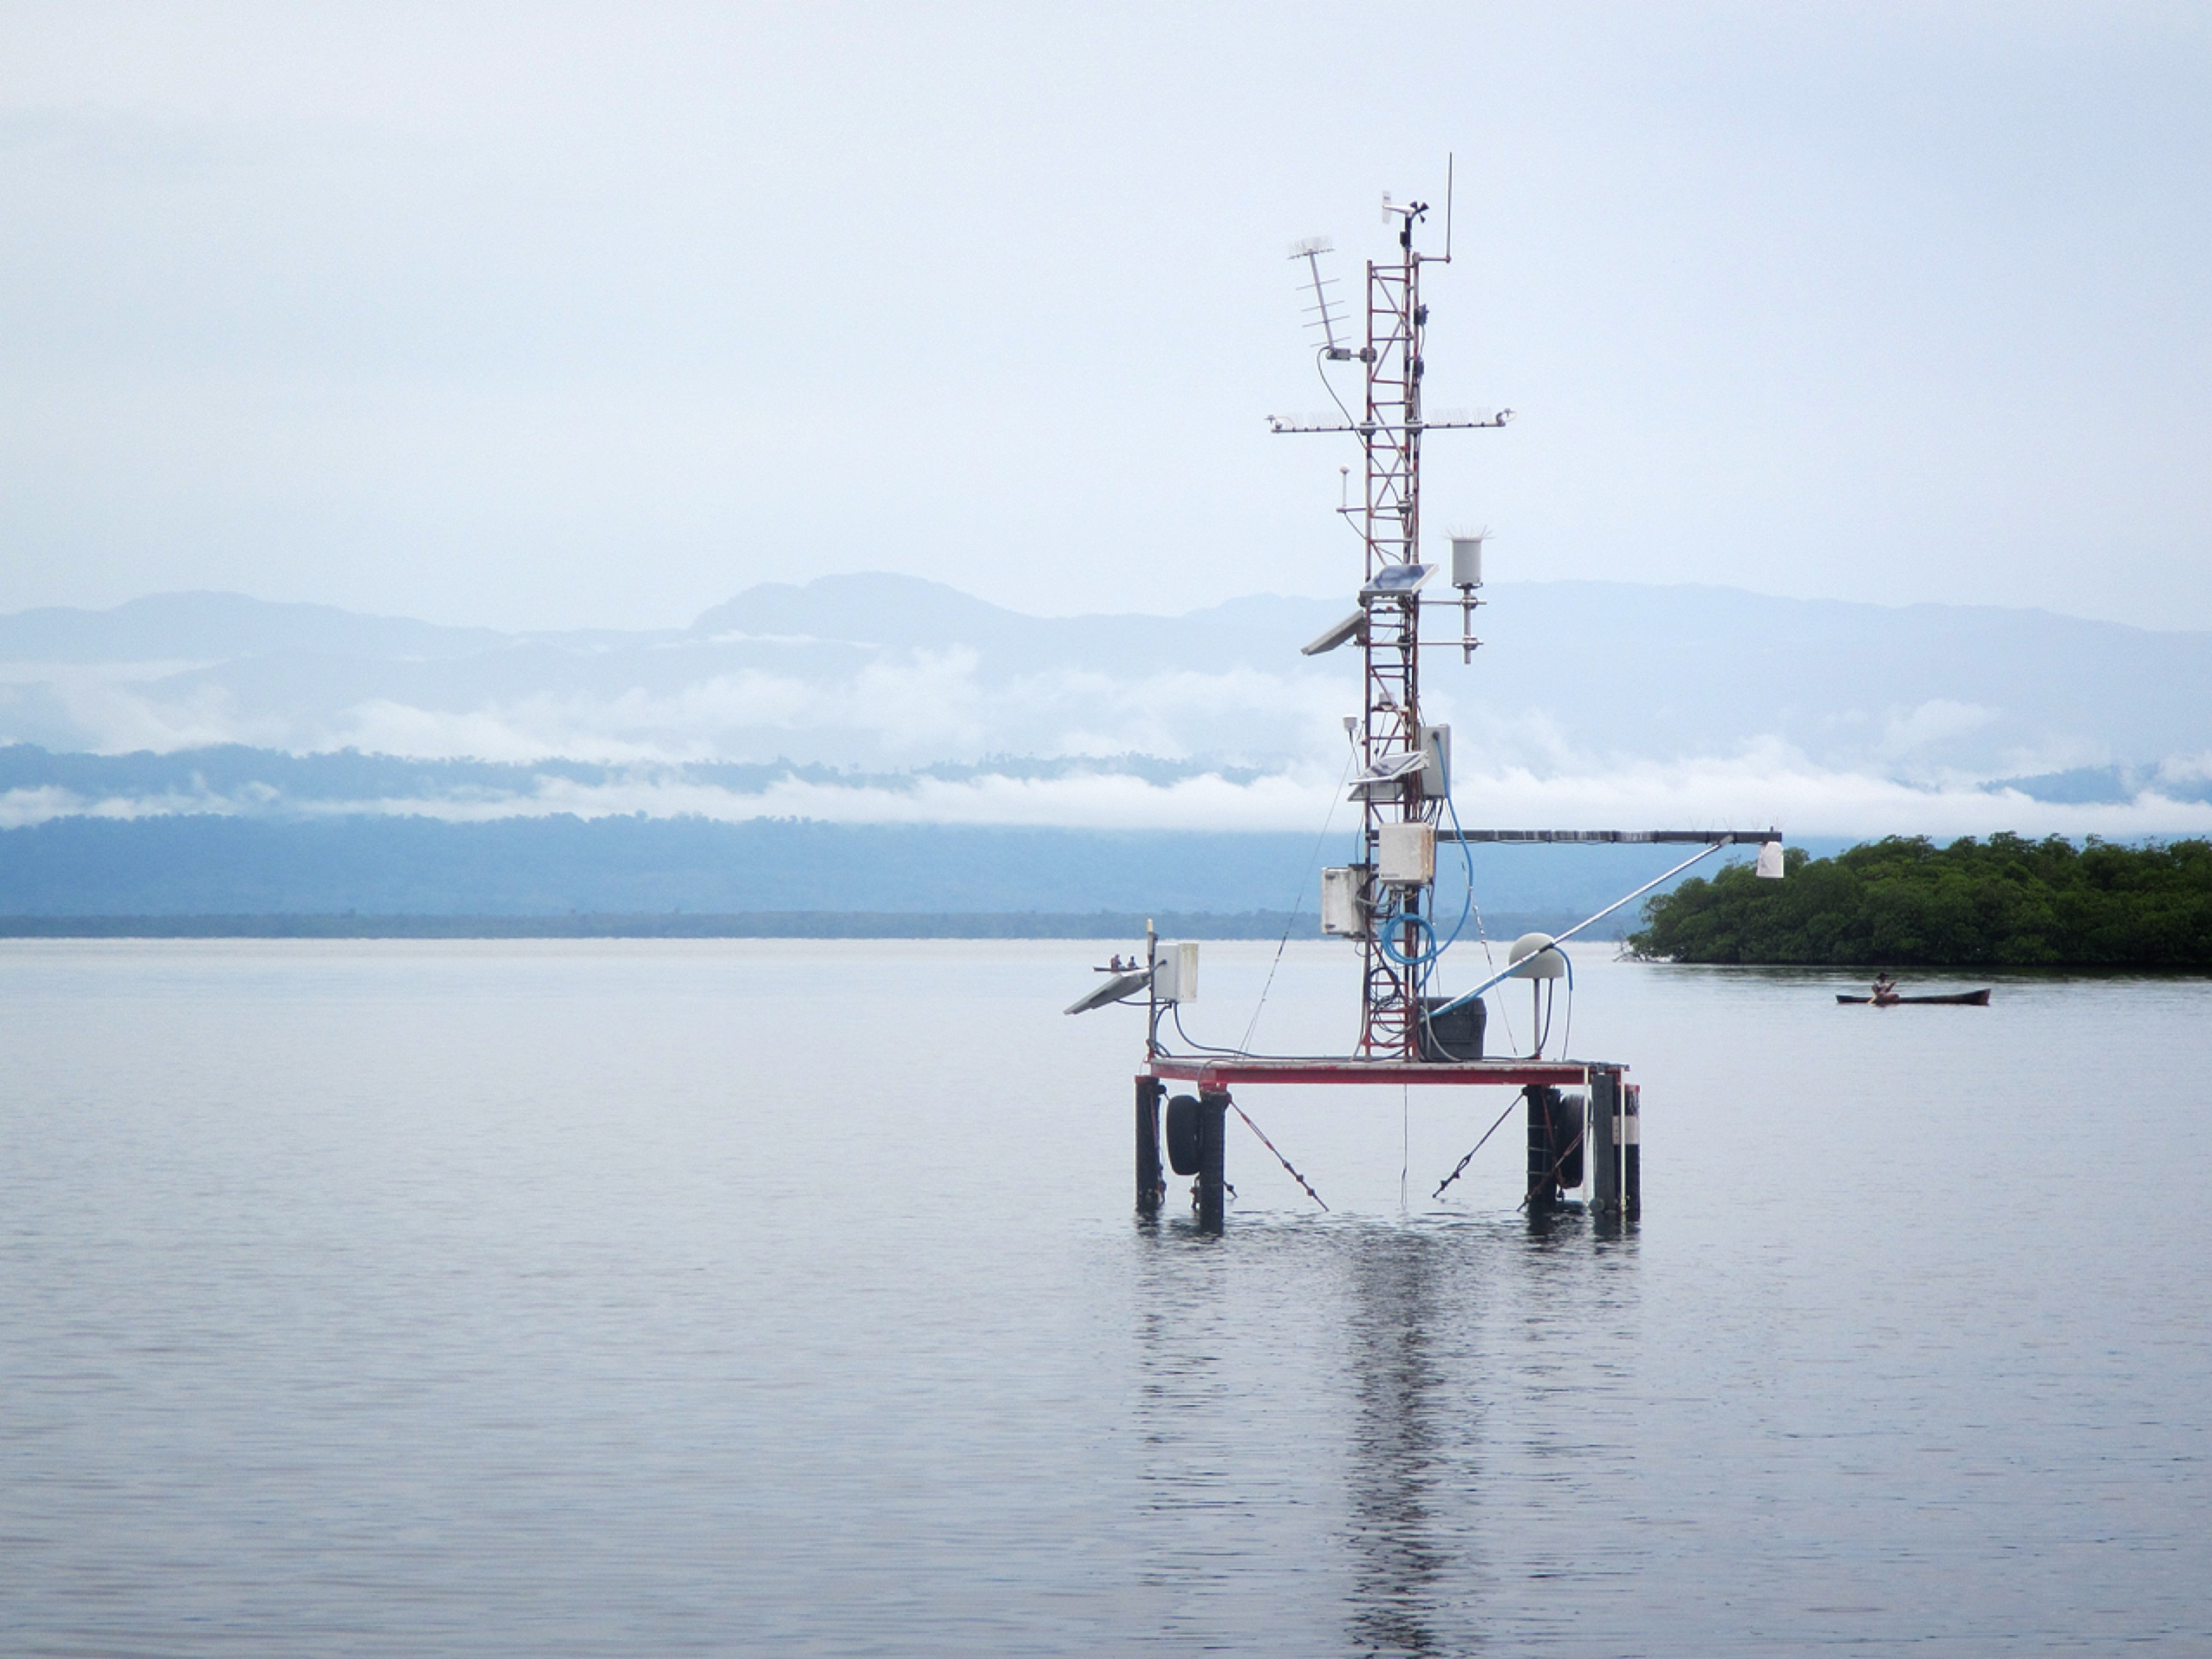 The research platform at the Bocas STRI station, where the microplastics were deployed.